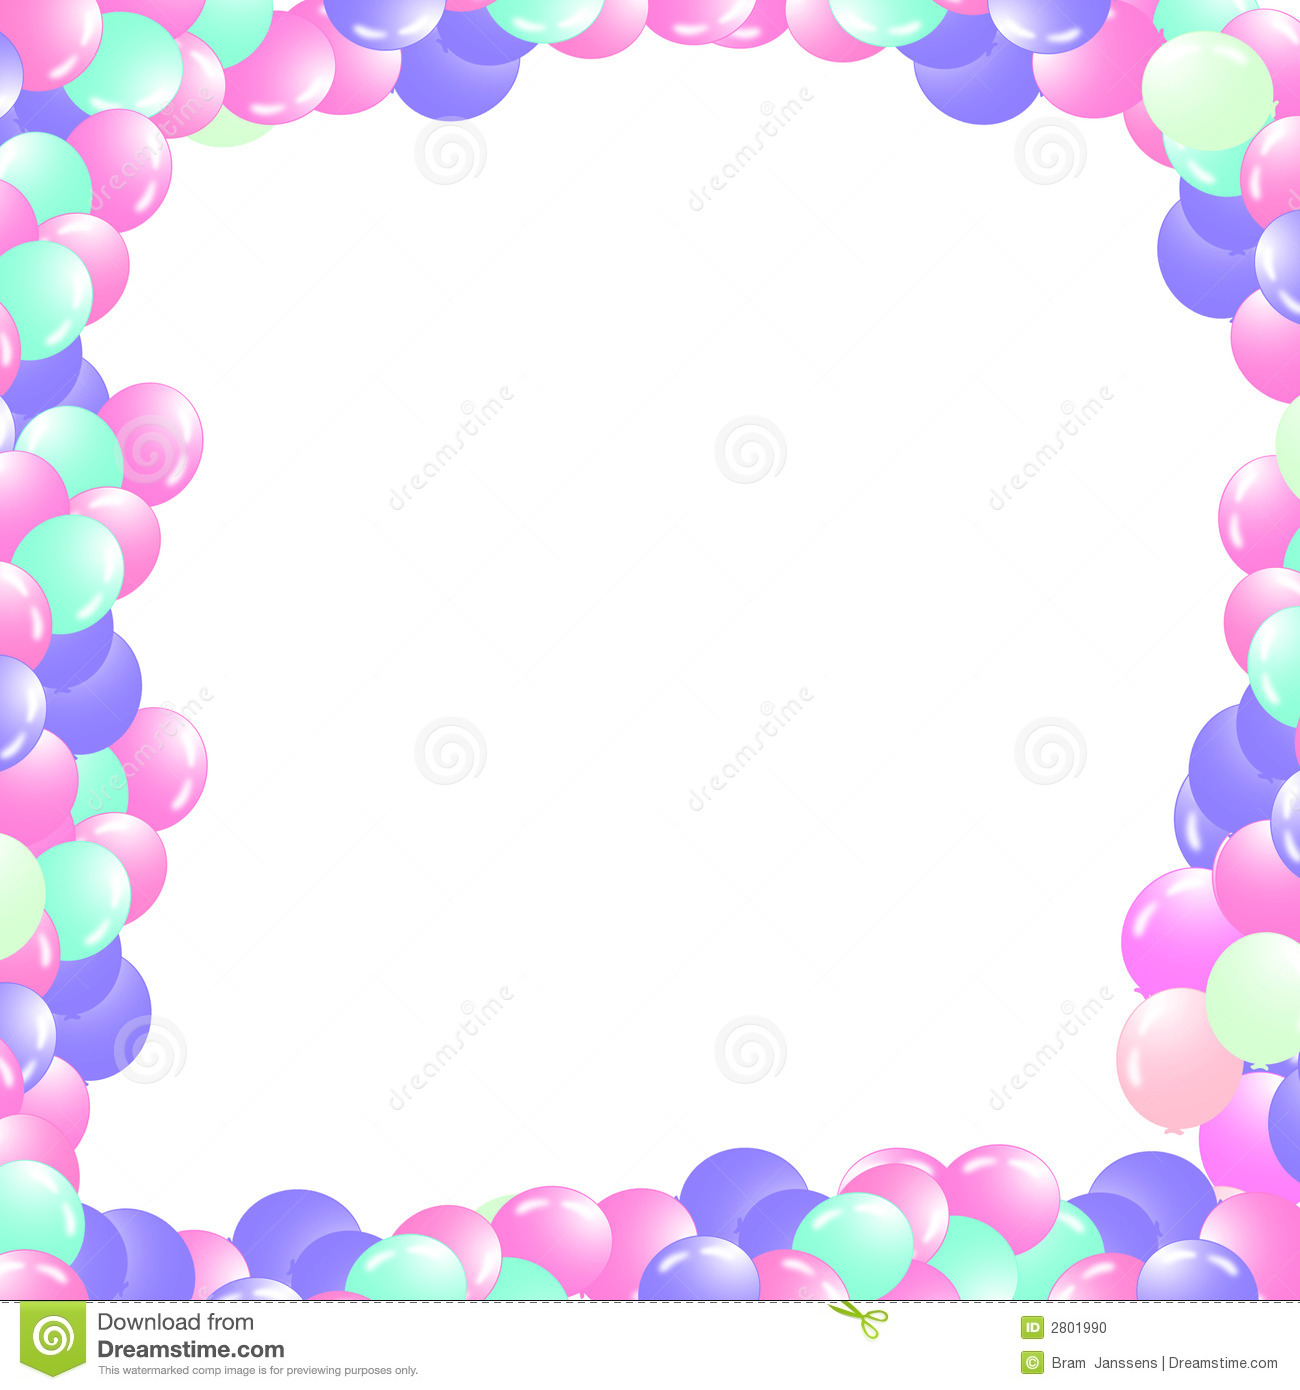 balloons in a frame